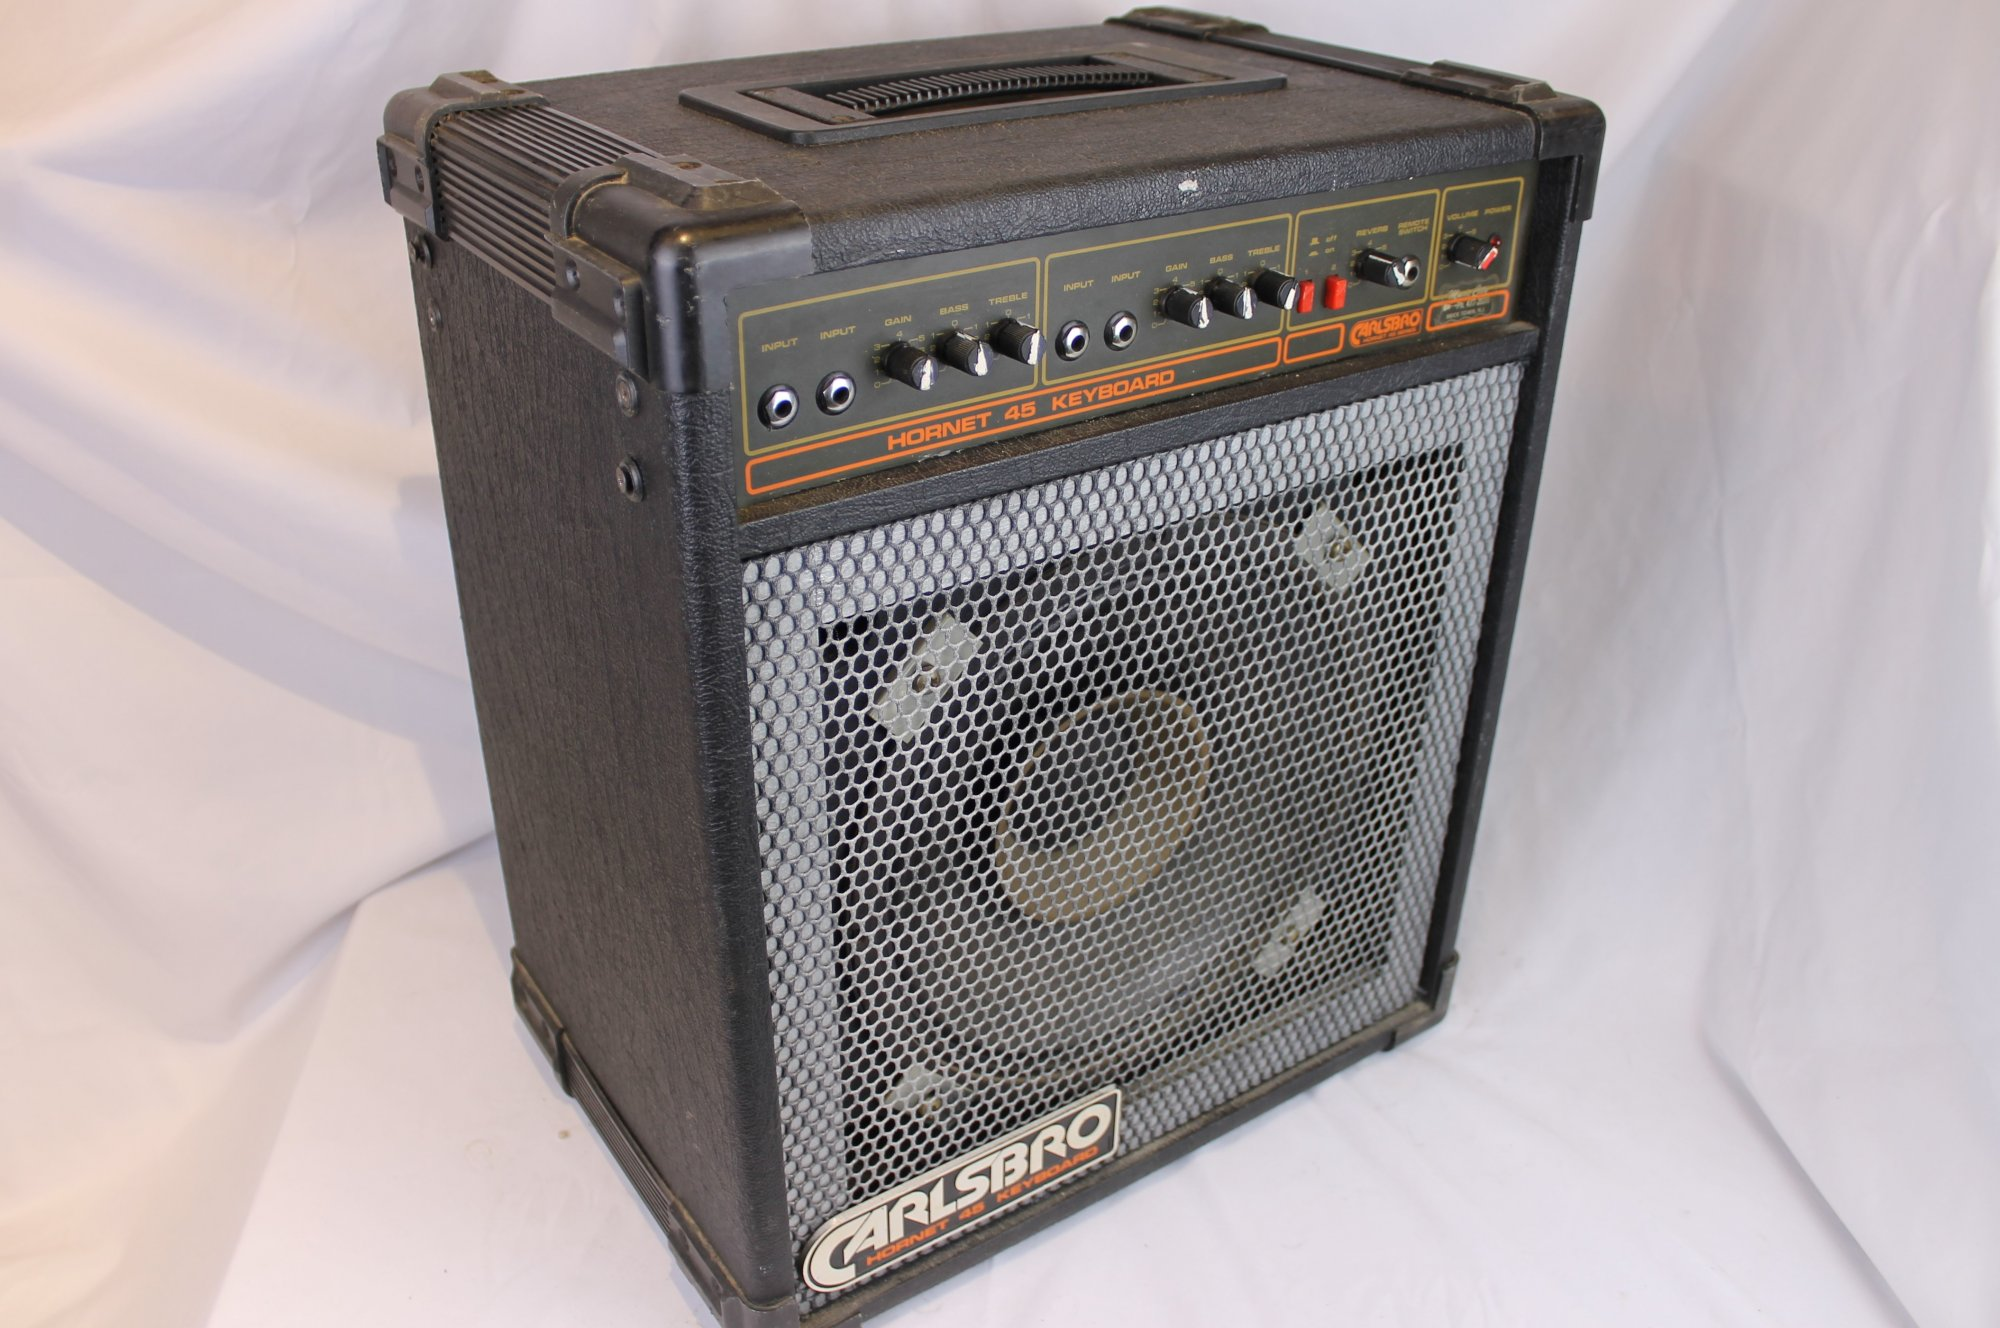 4286 - Black Carlsbro Hornet 45W Keyboard Amplifier 12 Speaker